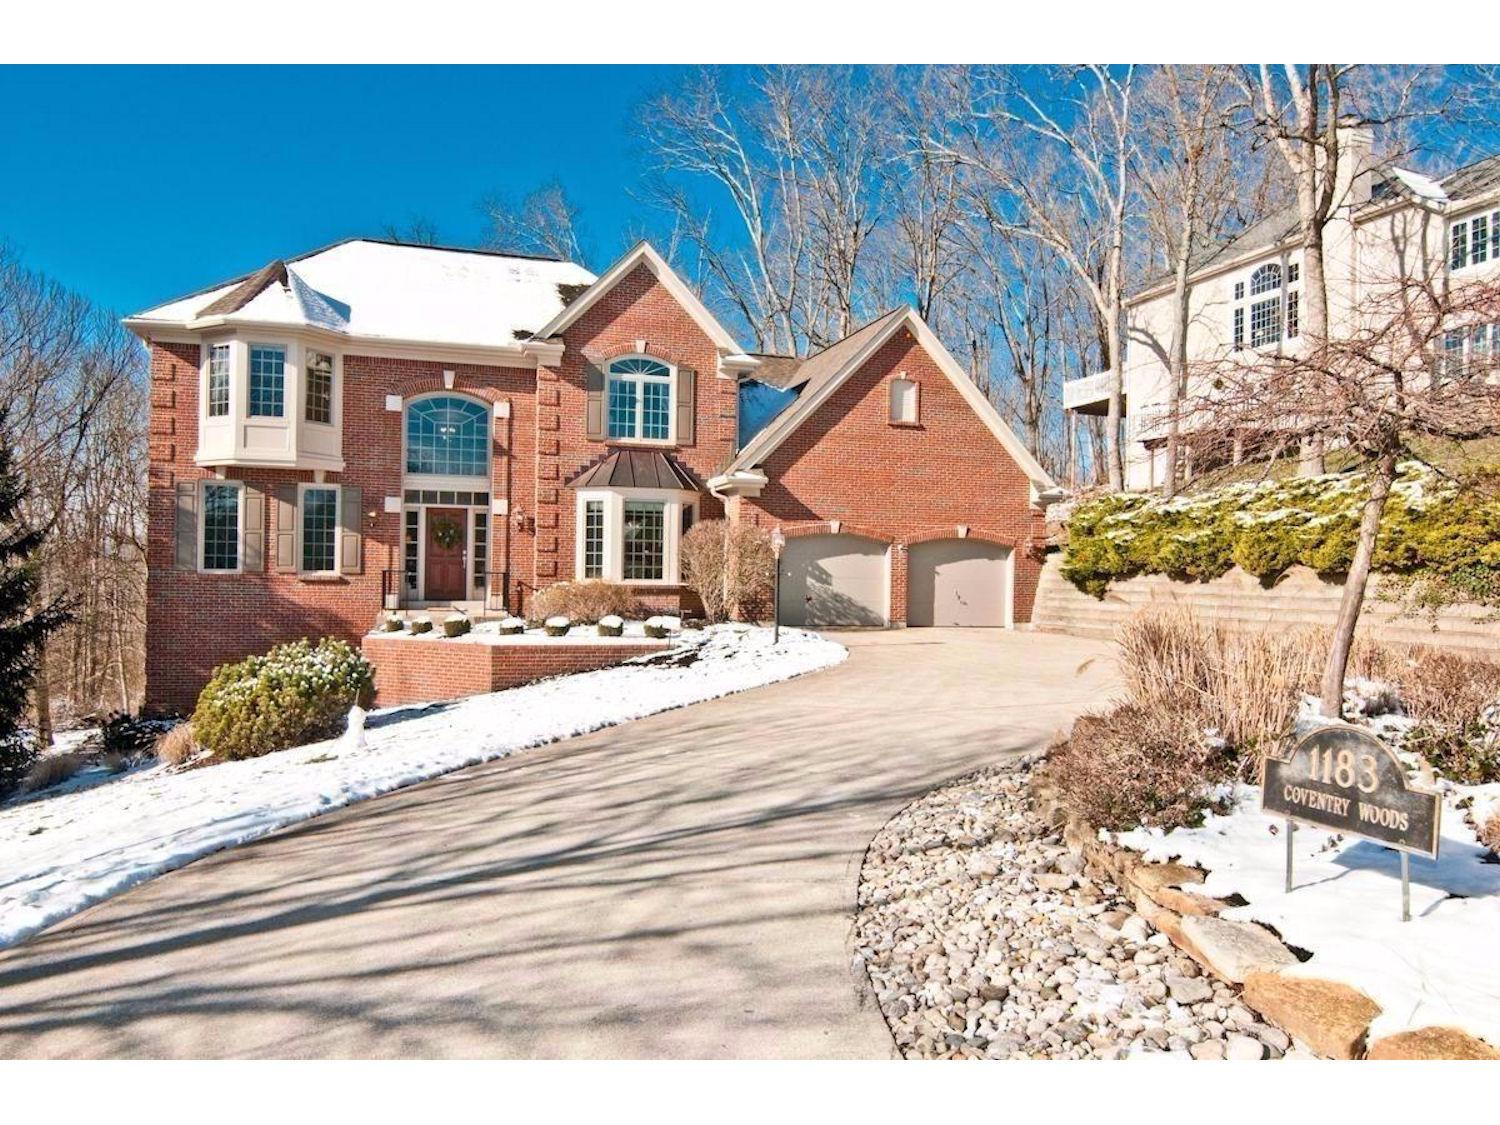 1183 Coventry Woods Drive, Anderson Twp, OH 45230